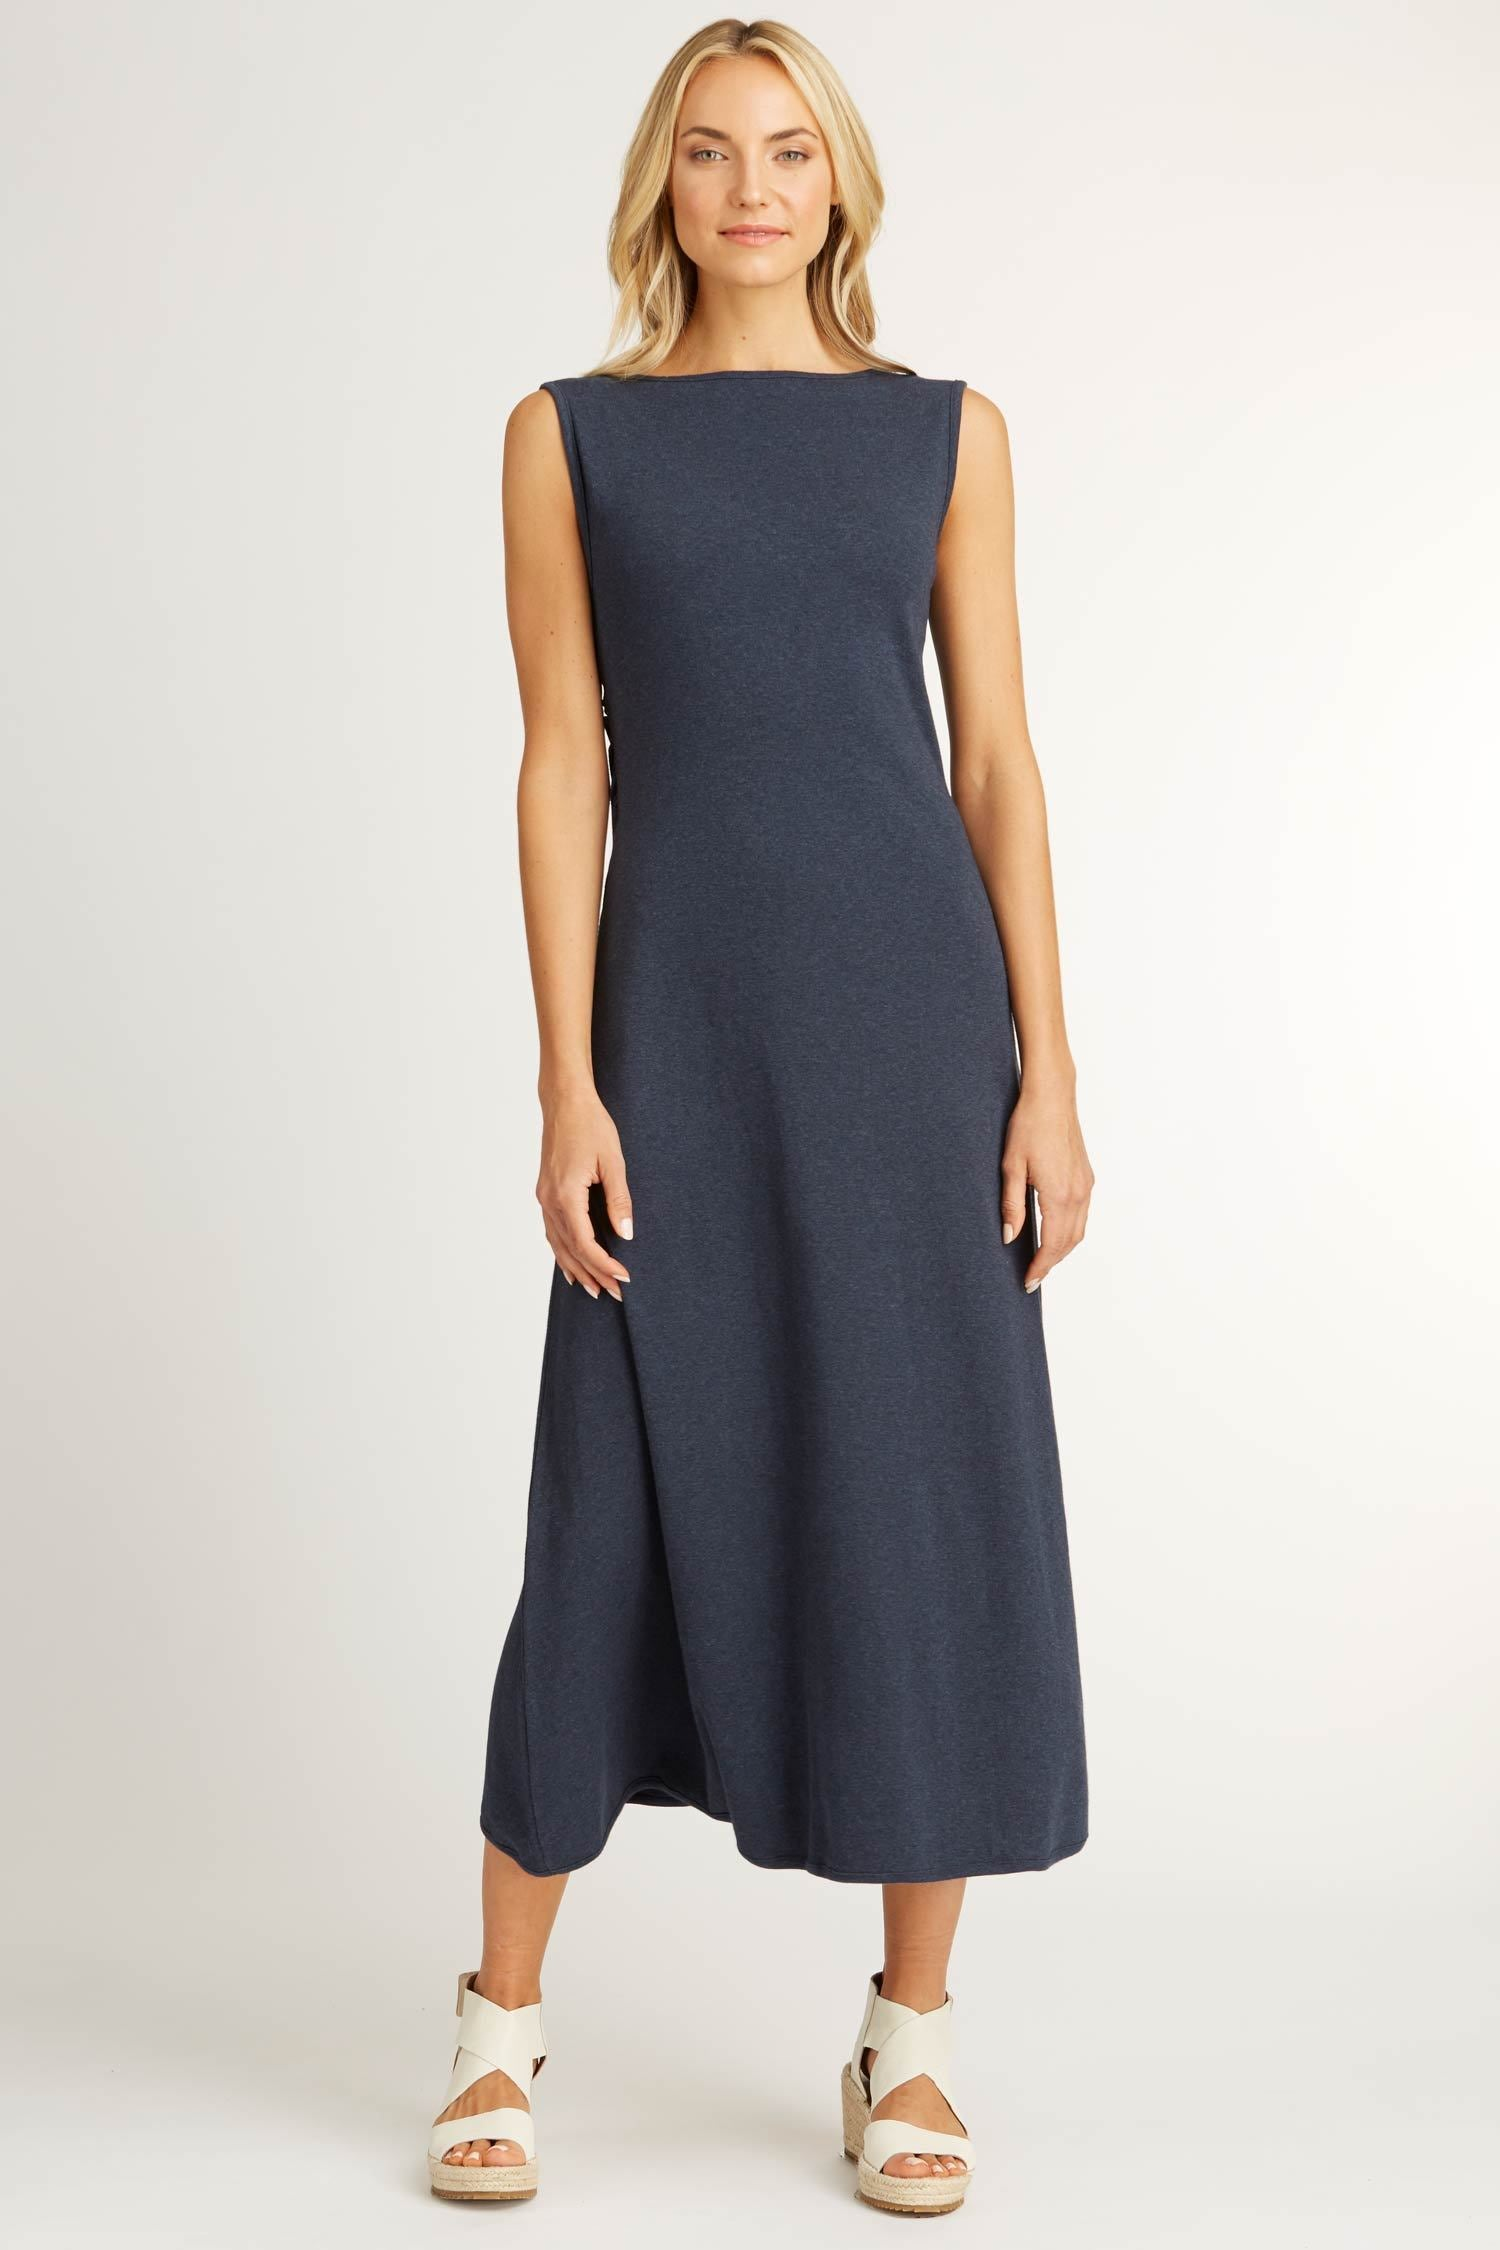 Womens Boatneck Maxi Dress in Navy Blue | Sustainable Fashion